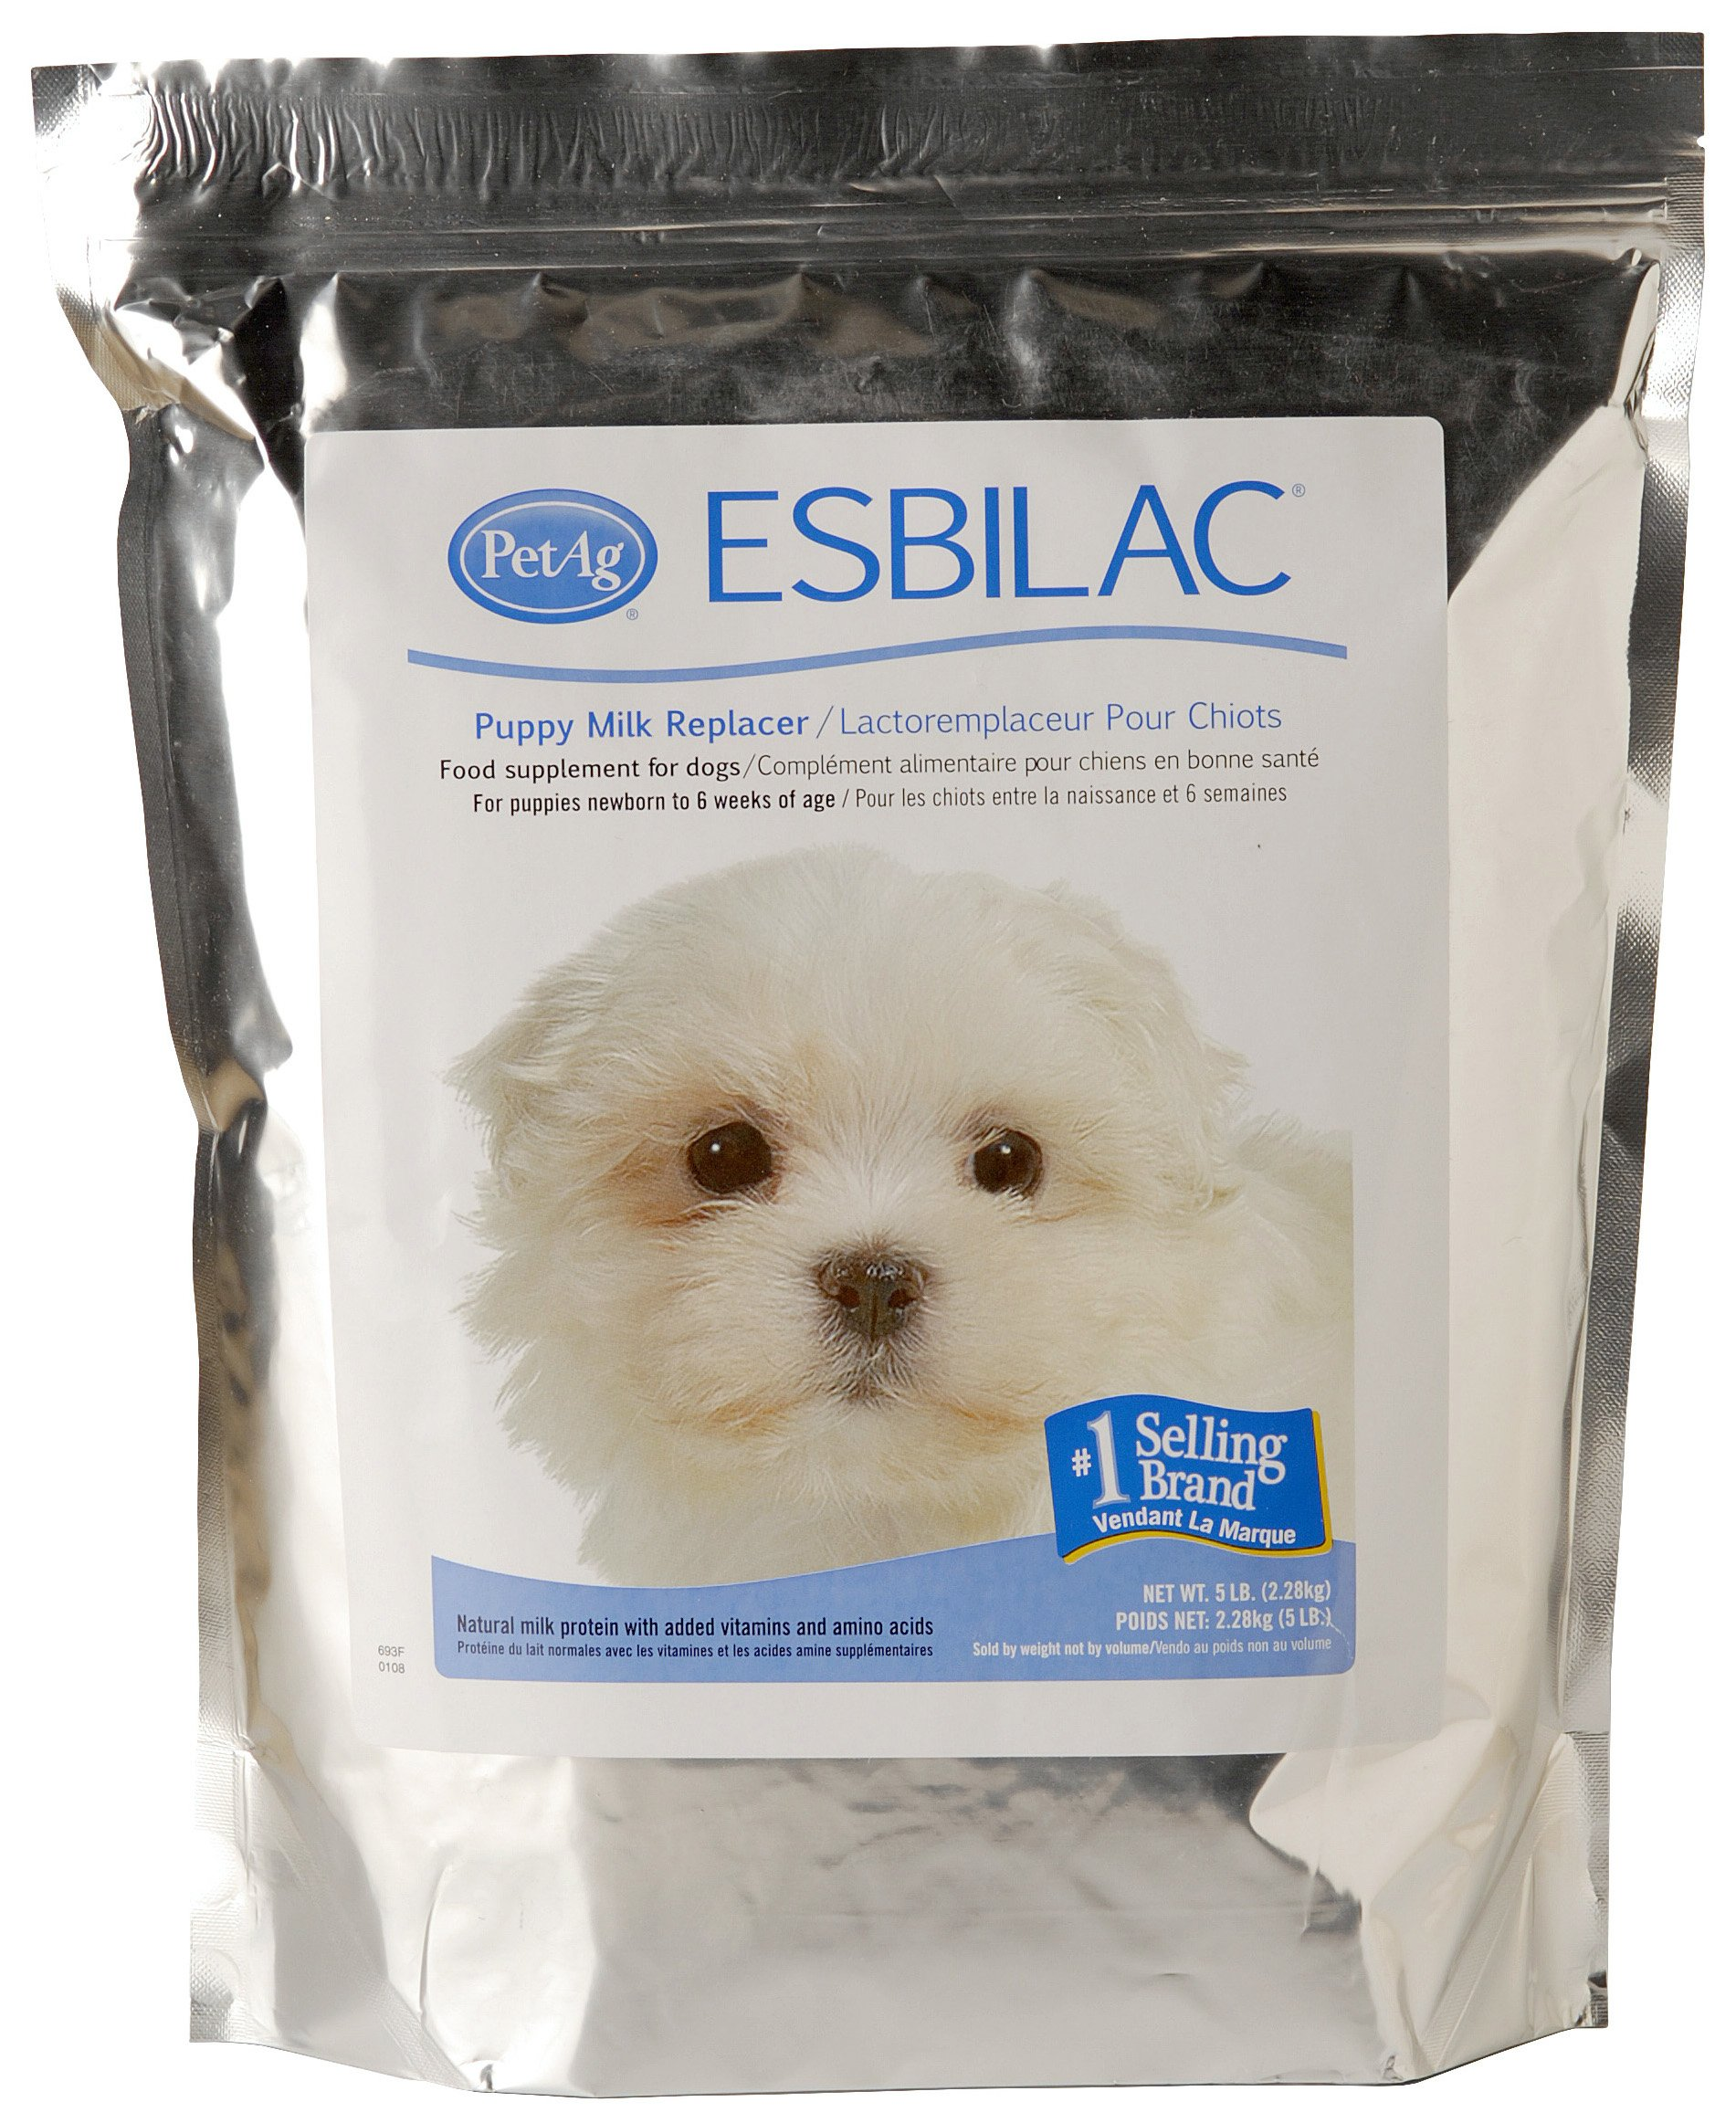 PetAg Esbilac Puppy Milk Replacer by PetAg